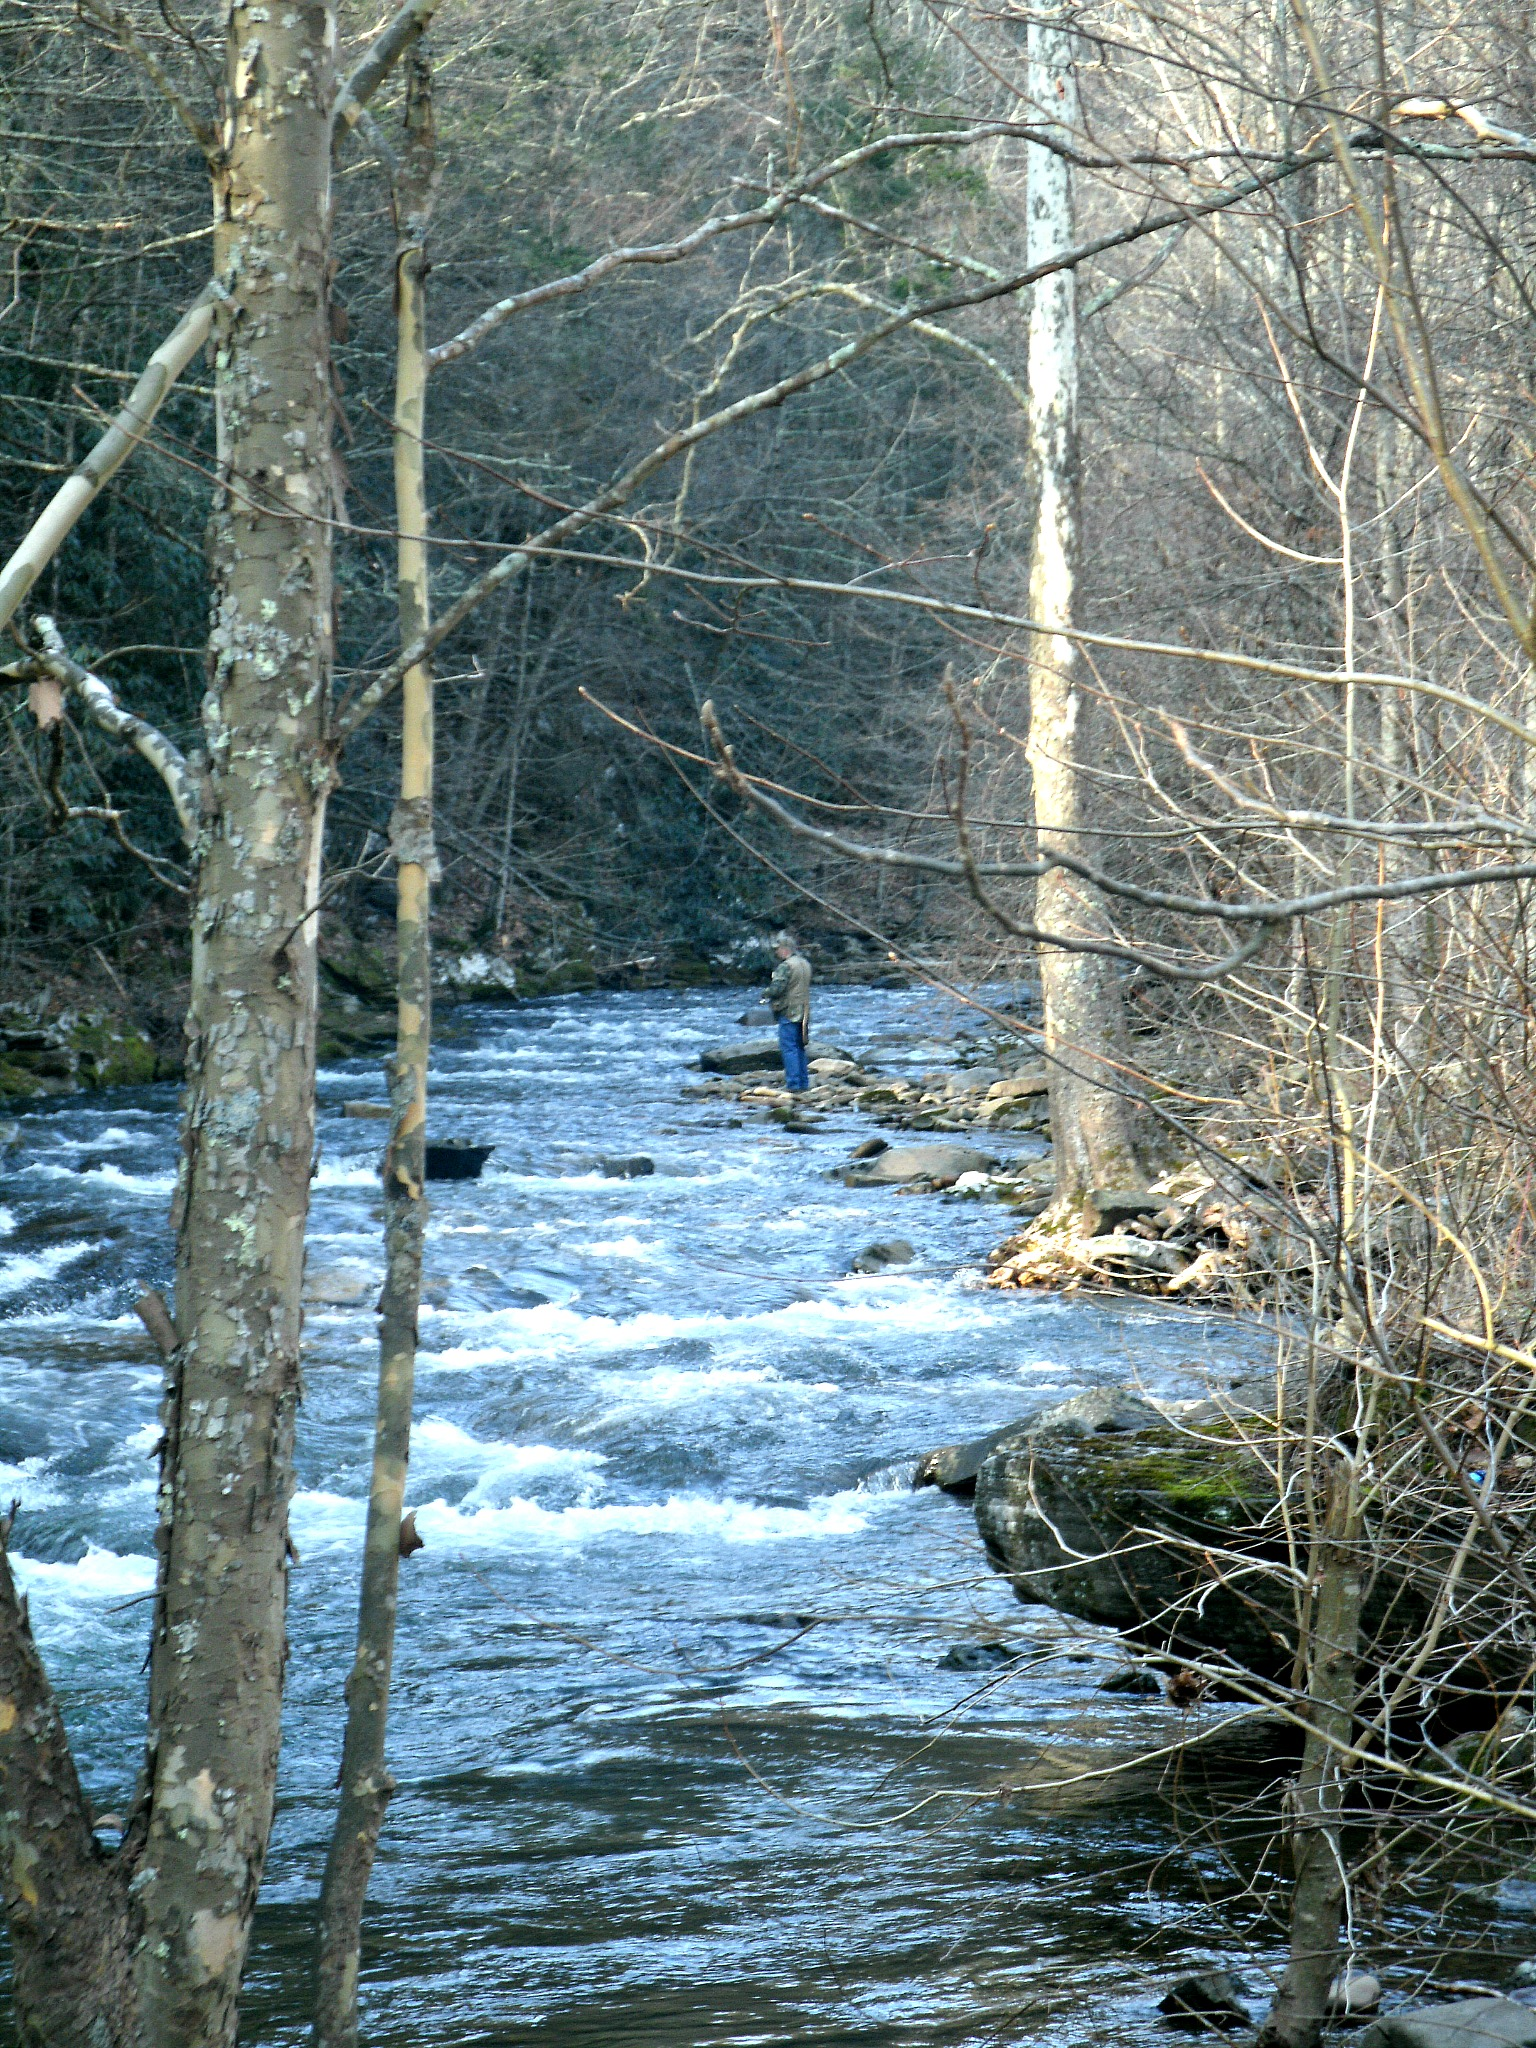 Tom fishing on a cold Easter Morning